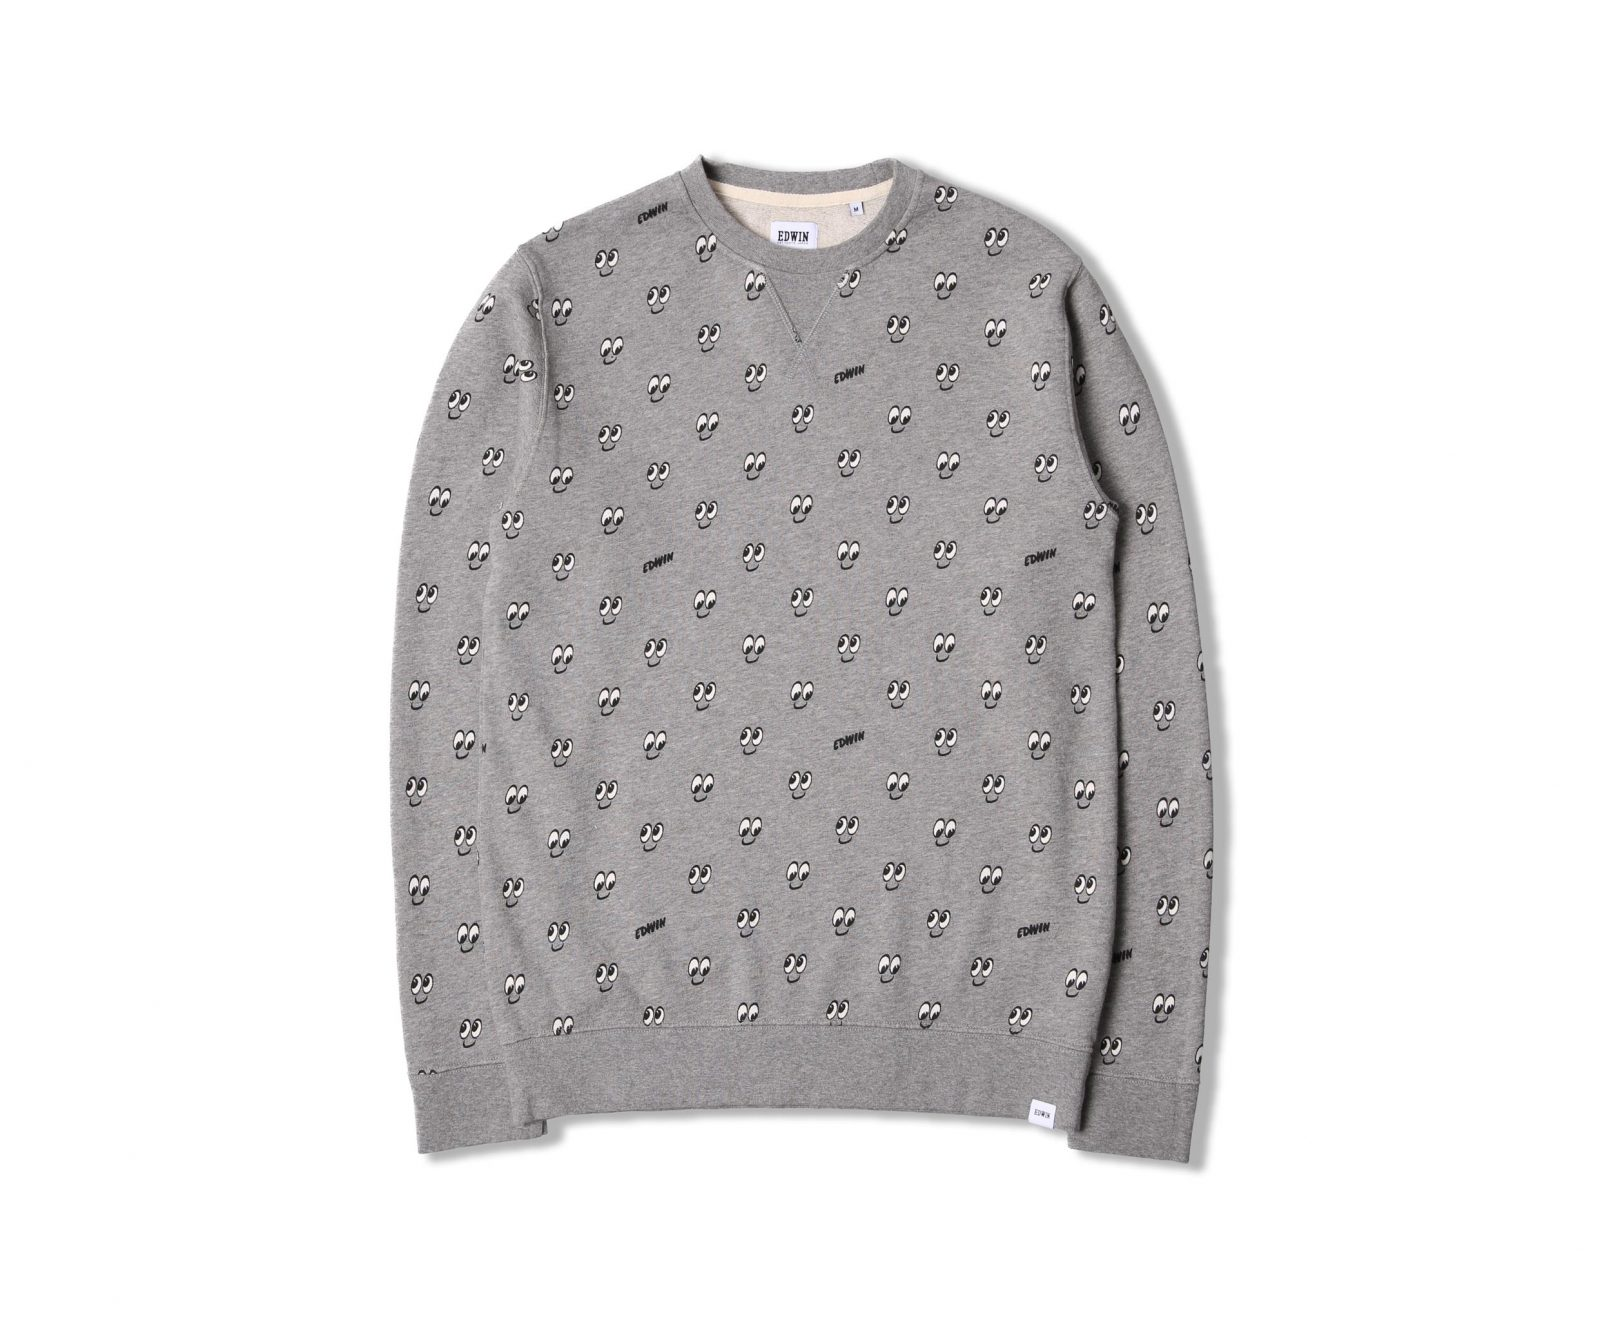 1472204665-rew-sweat-mid-grey-marl-edwin-eyes-landscape-1